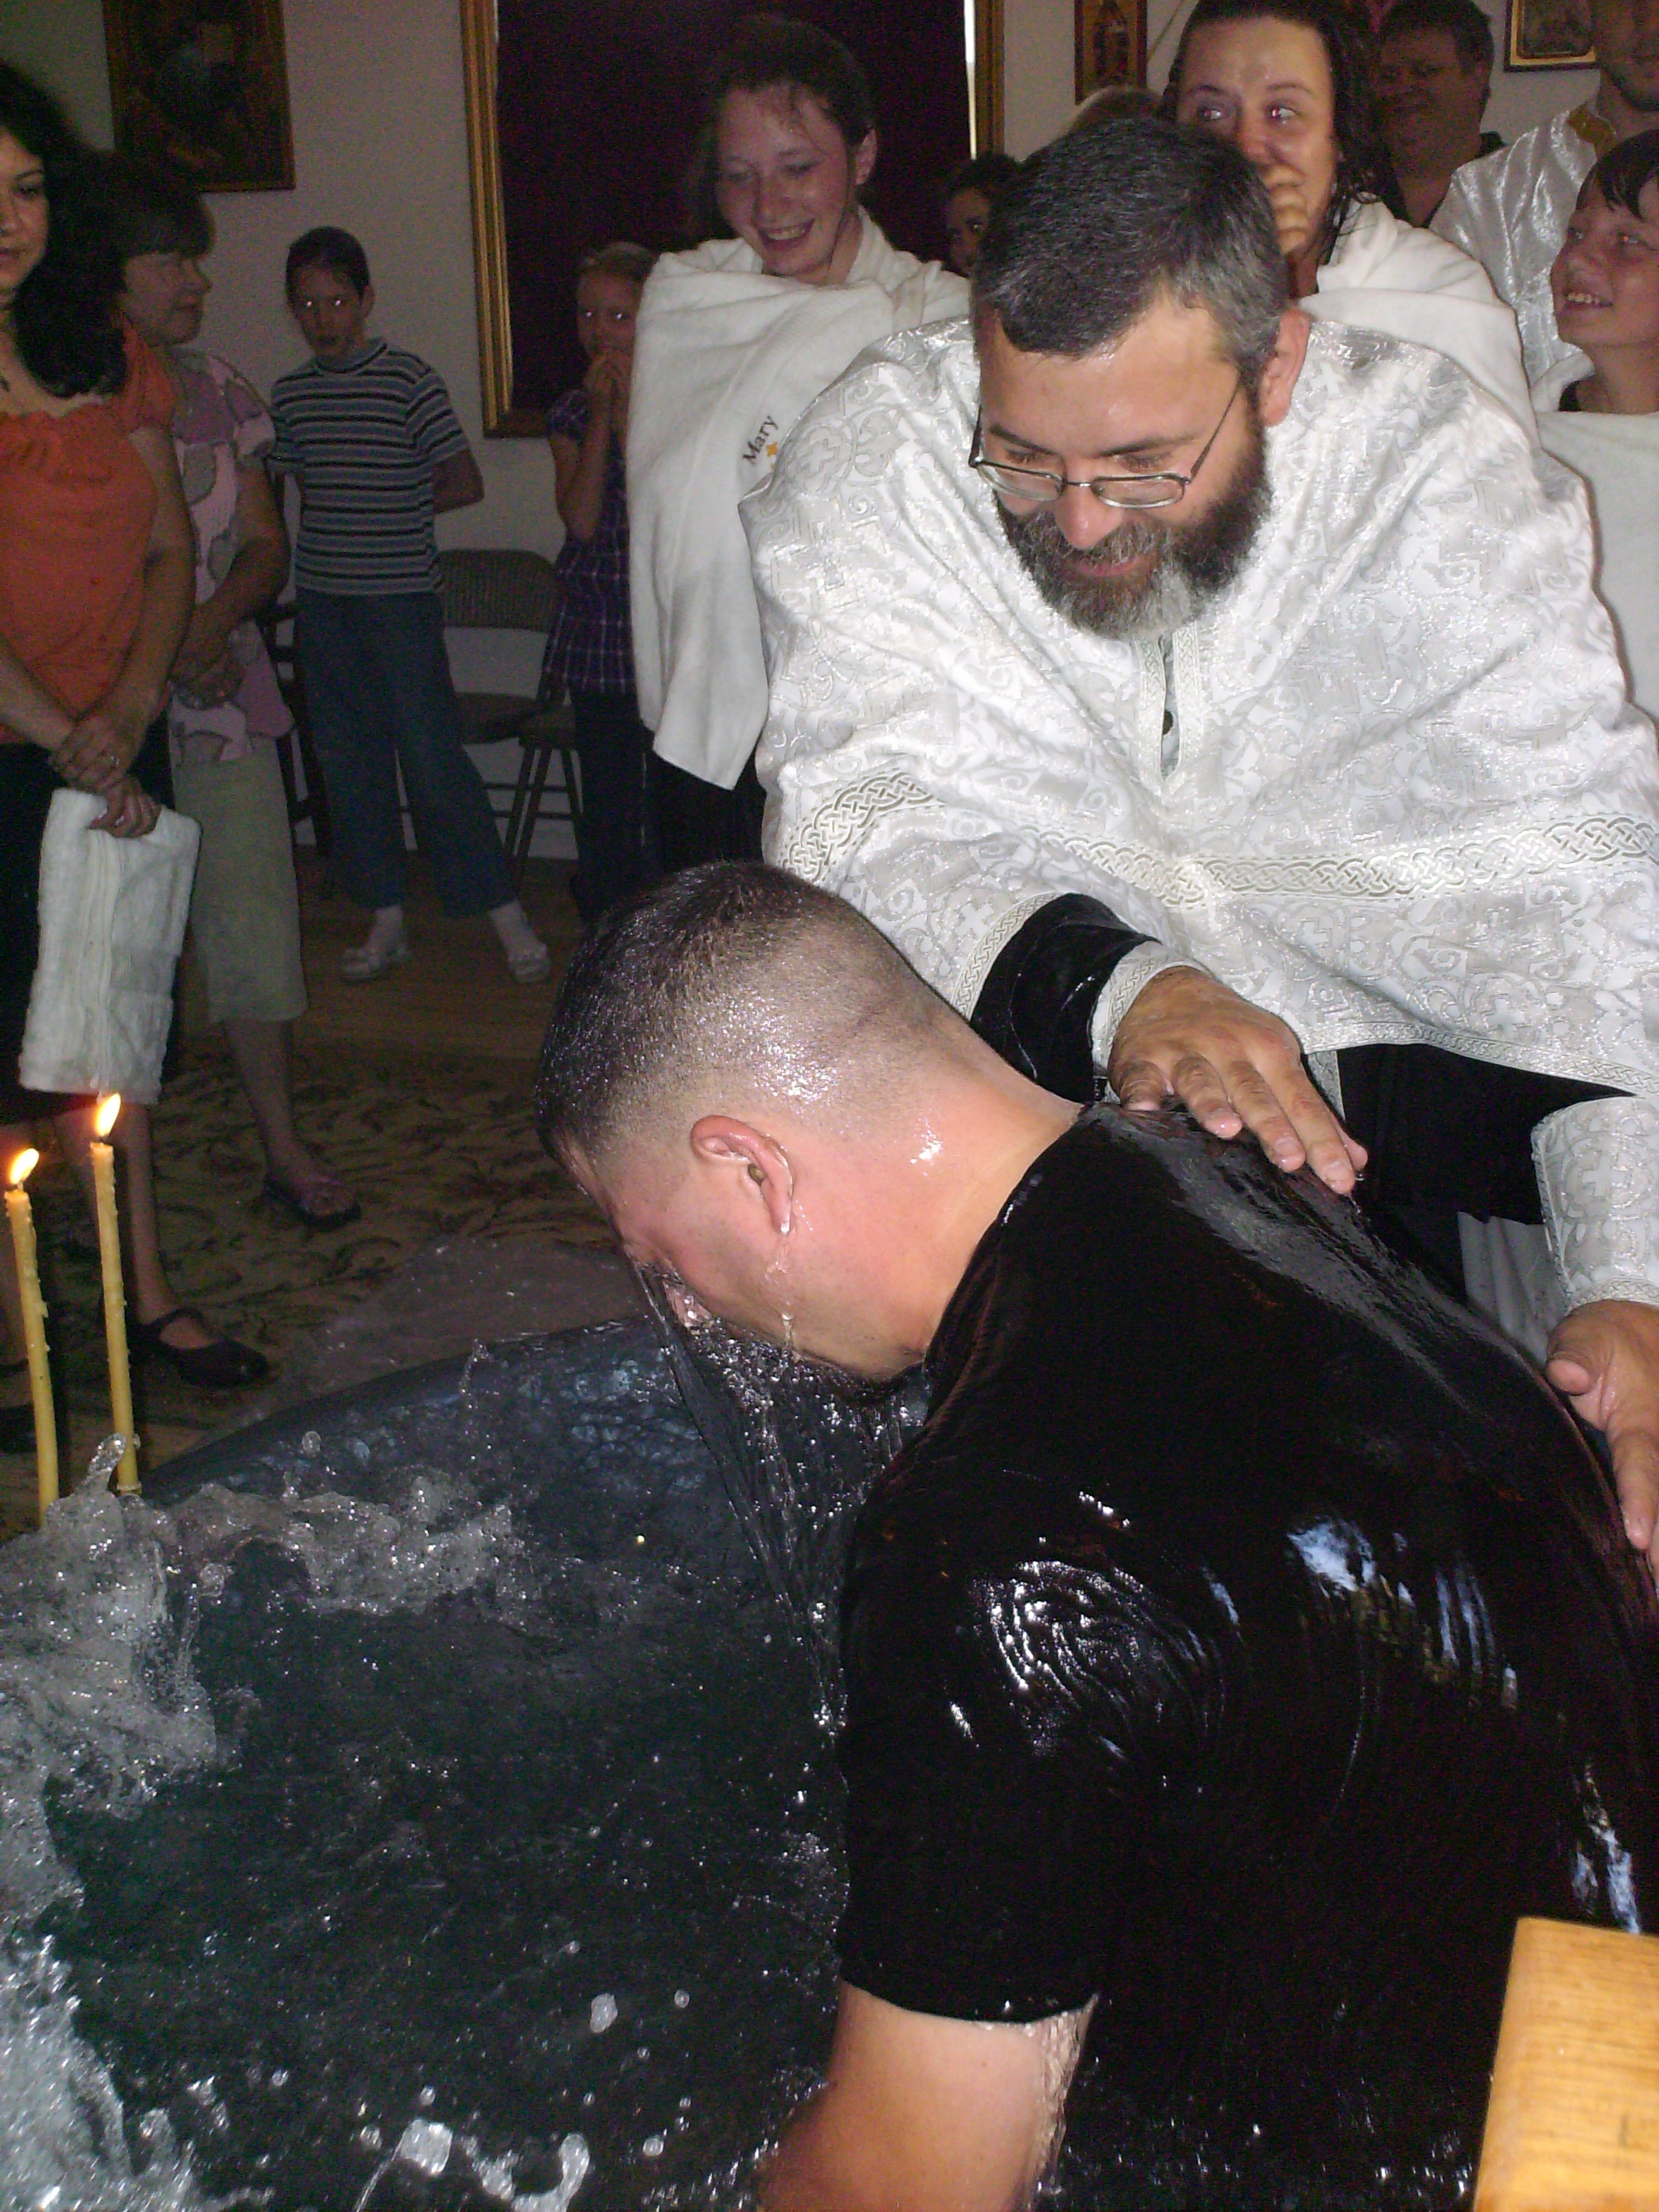 The Servant of God, Ephraim, is baptized in the name of the Father and of the Son and of the Holy Spirit.